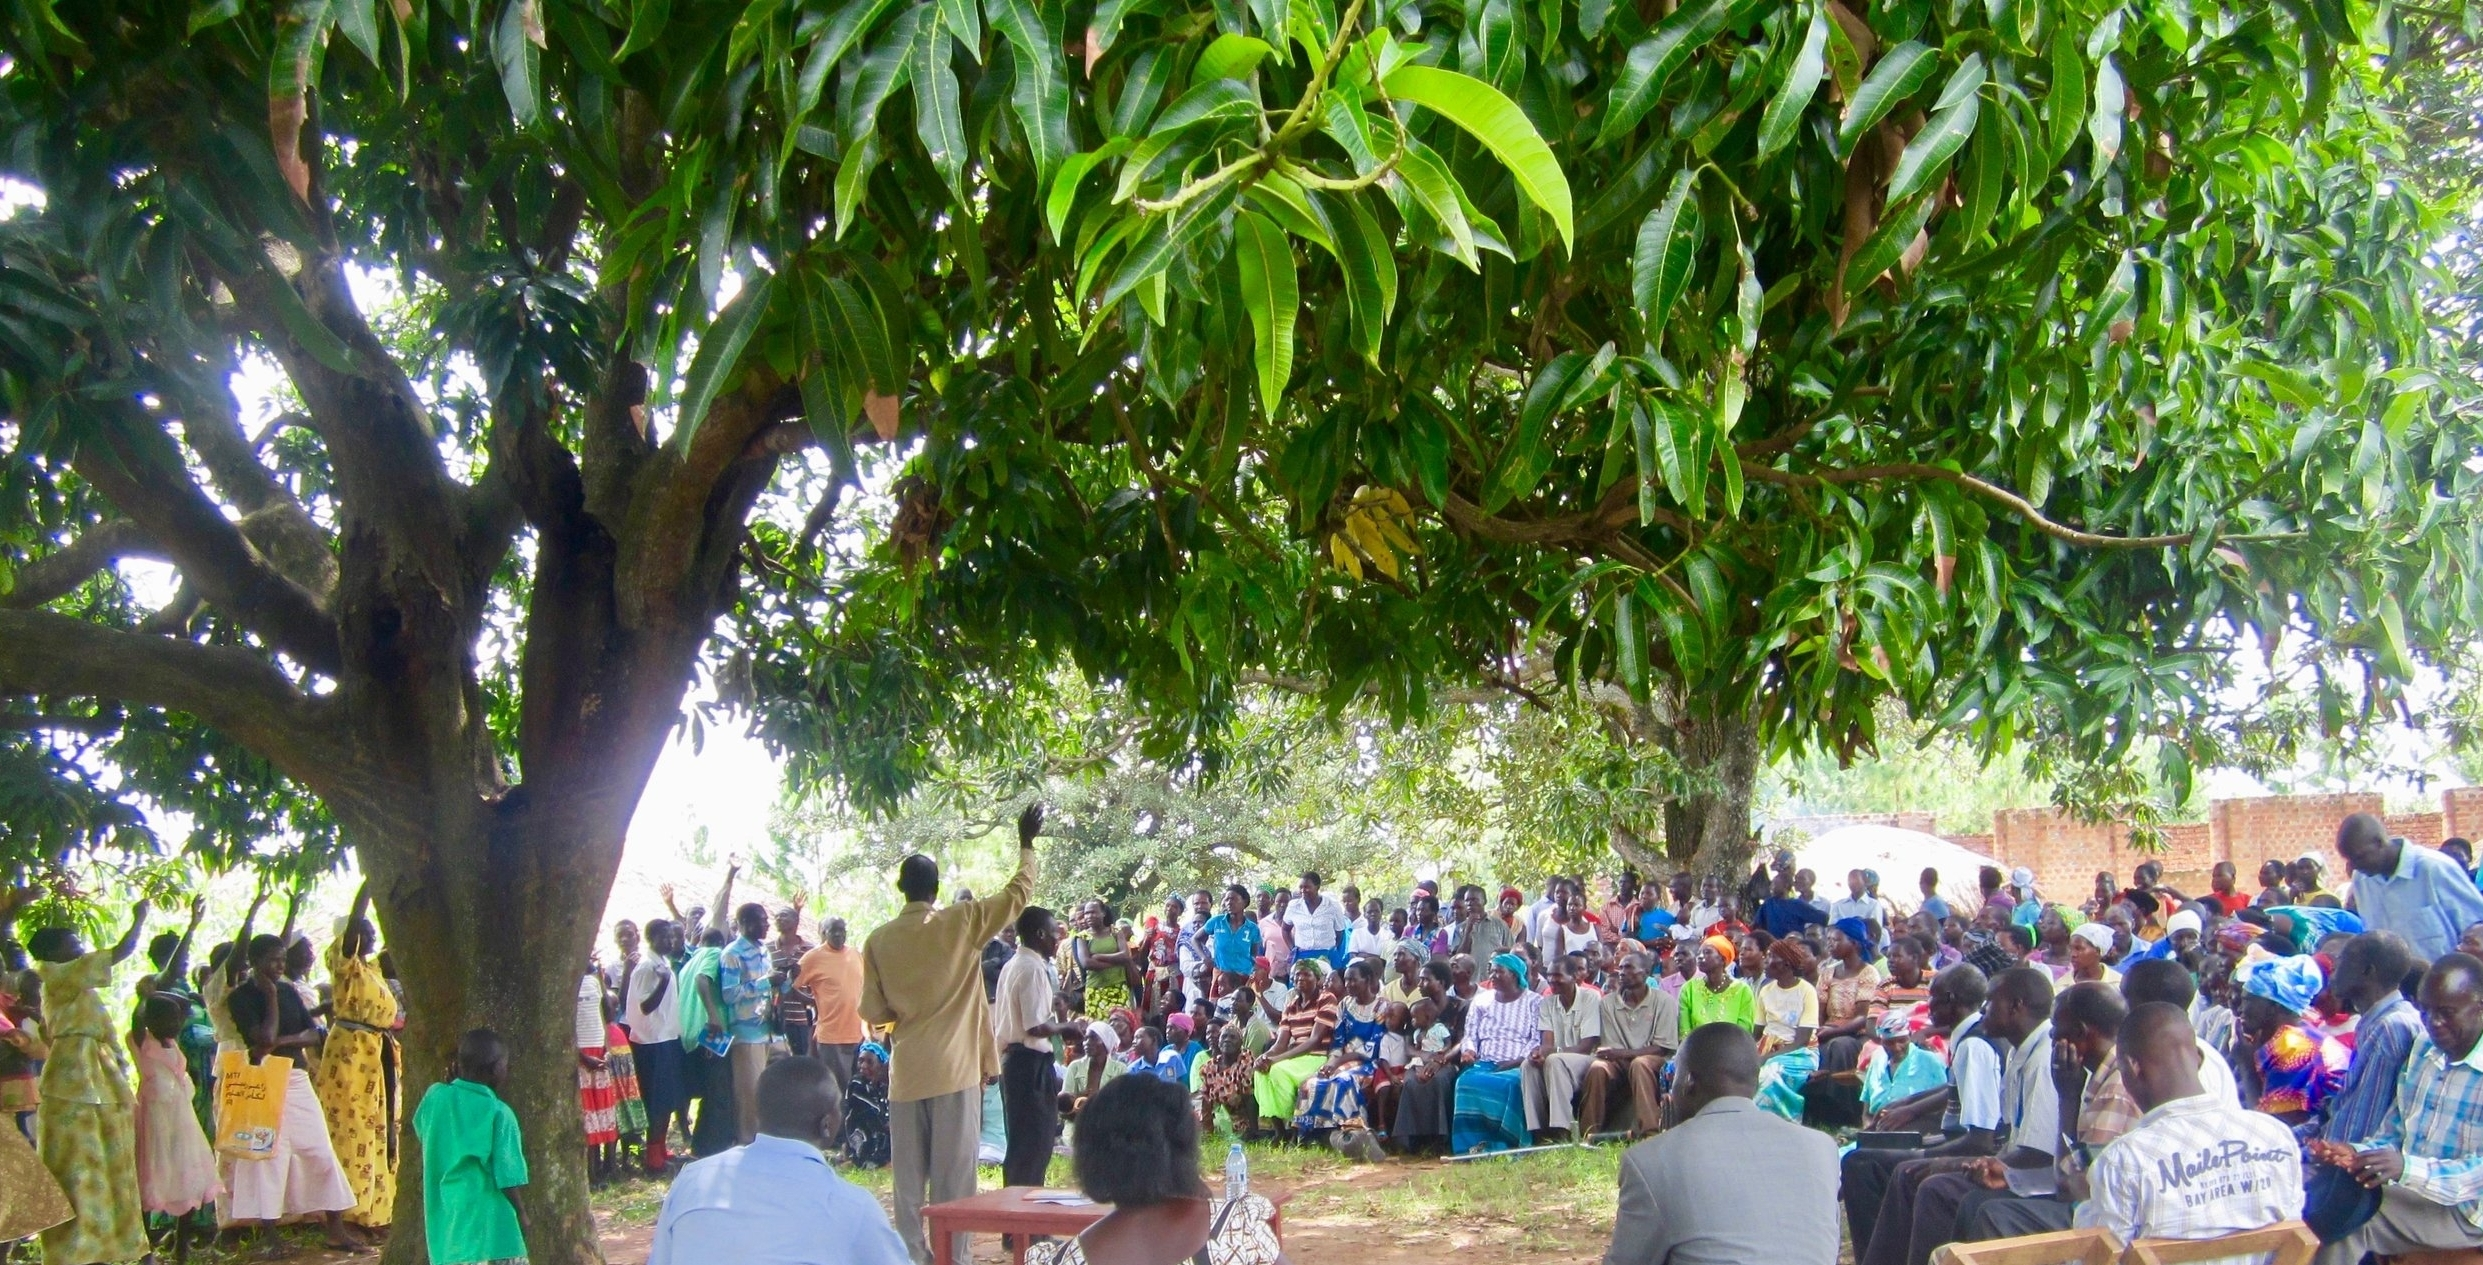 4,500 people actively participating in community  discipleship. -